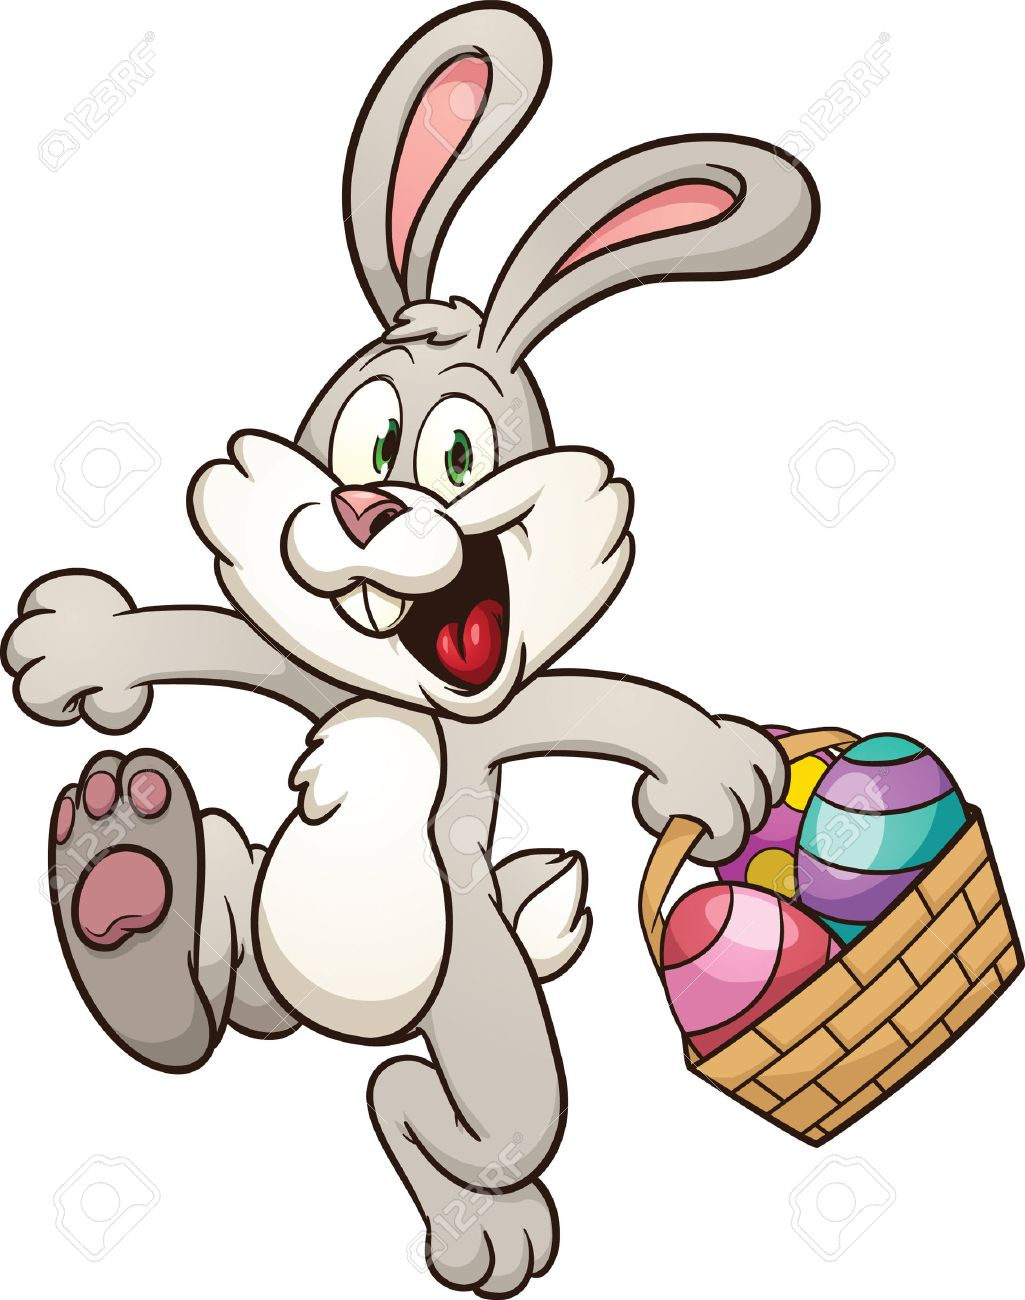 Easter bunny free clipart 4 » Clipart Station.